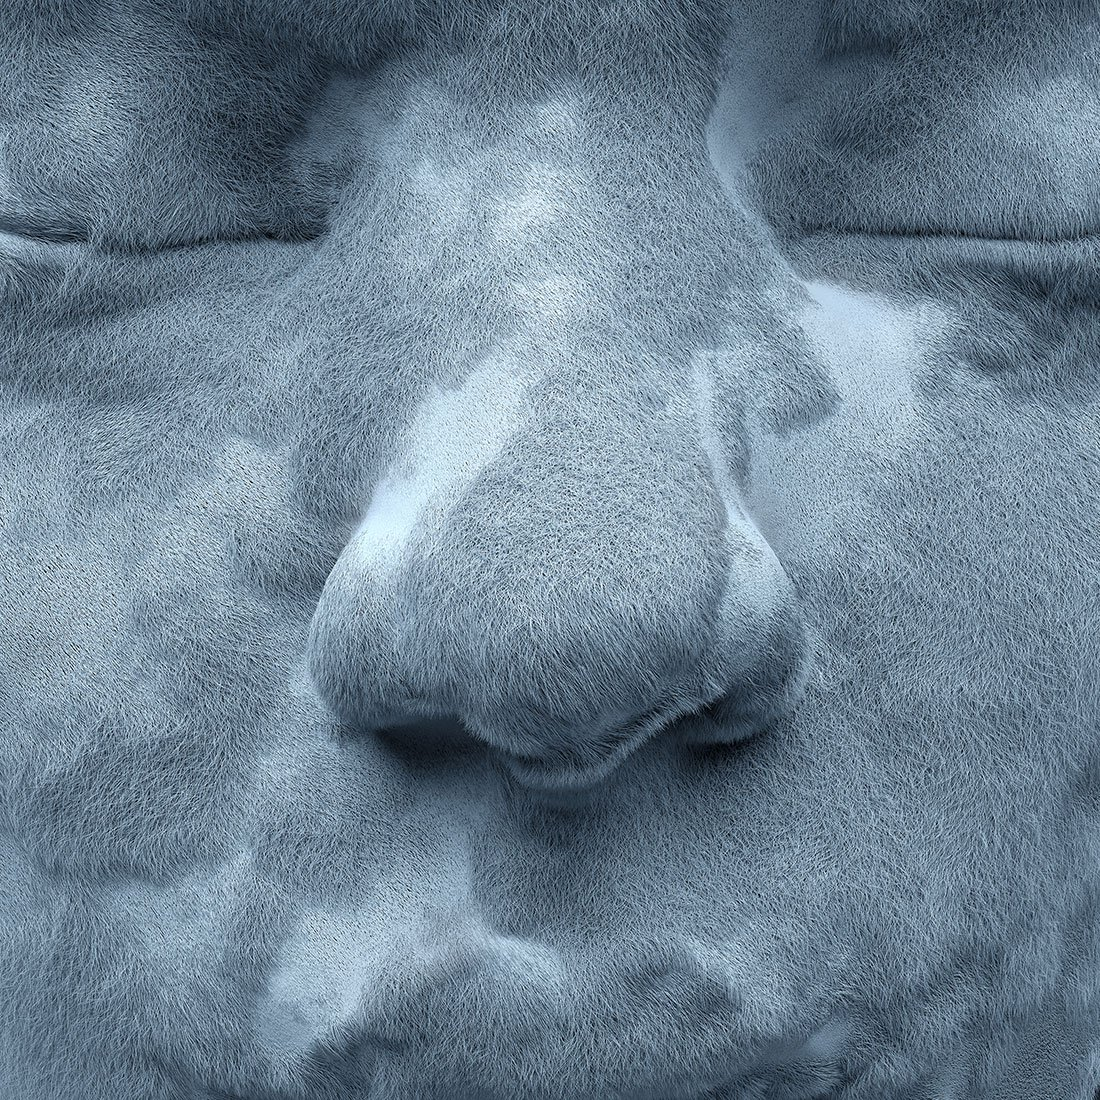 Winterface - Adam Martinakis